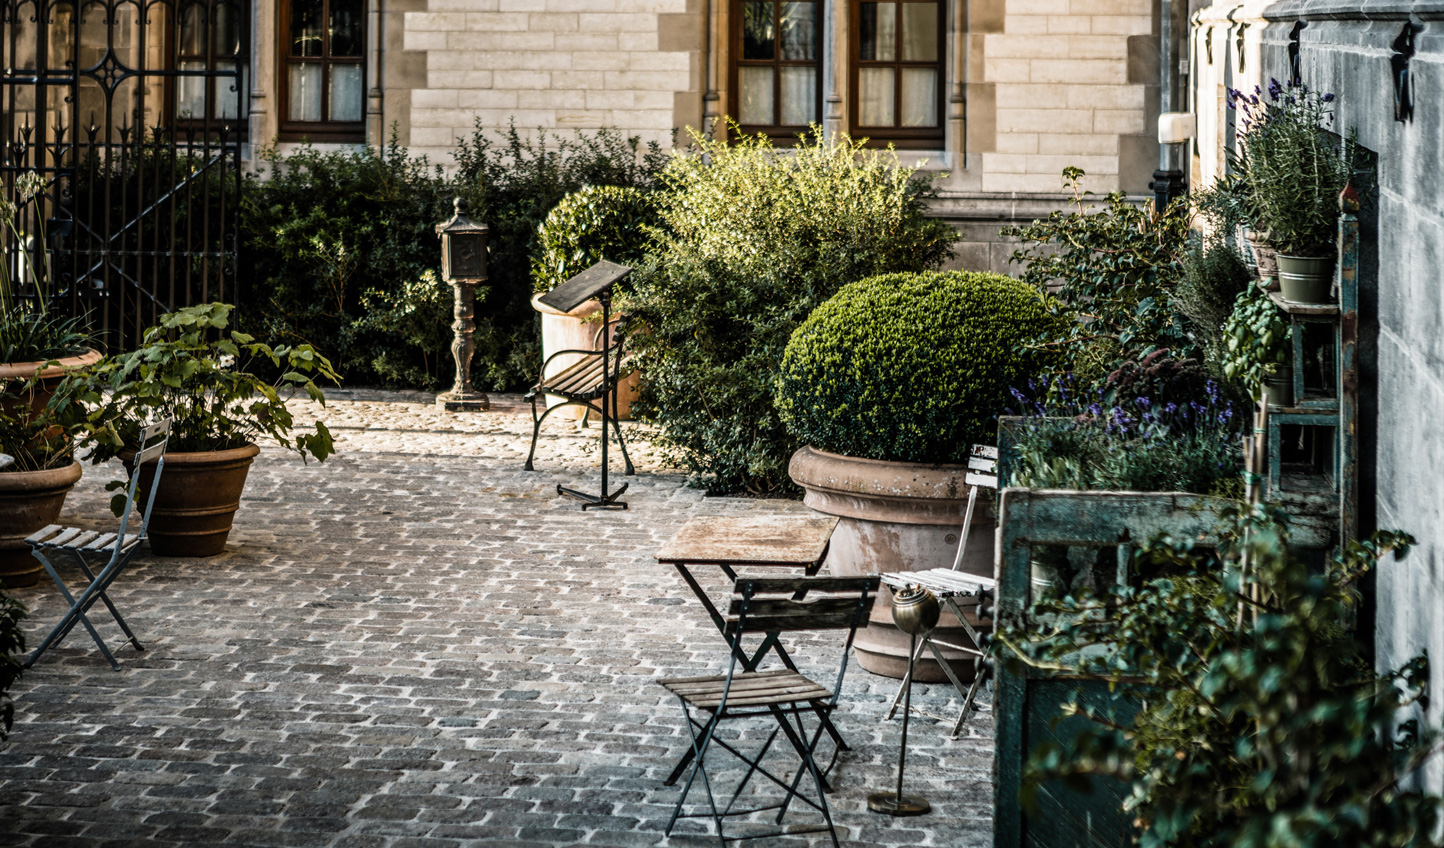 Wander past the cobblestone courtyard and through the doors of this old-world, postcard-perfect hotel